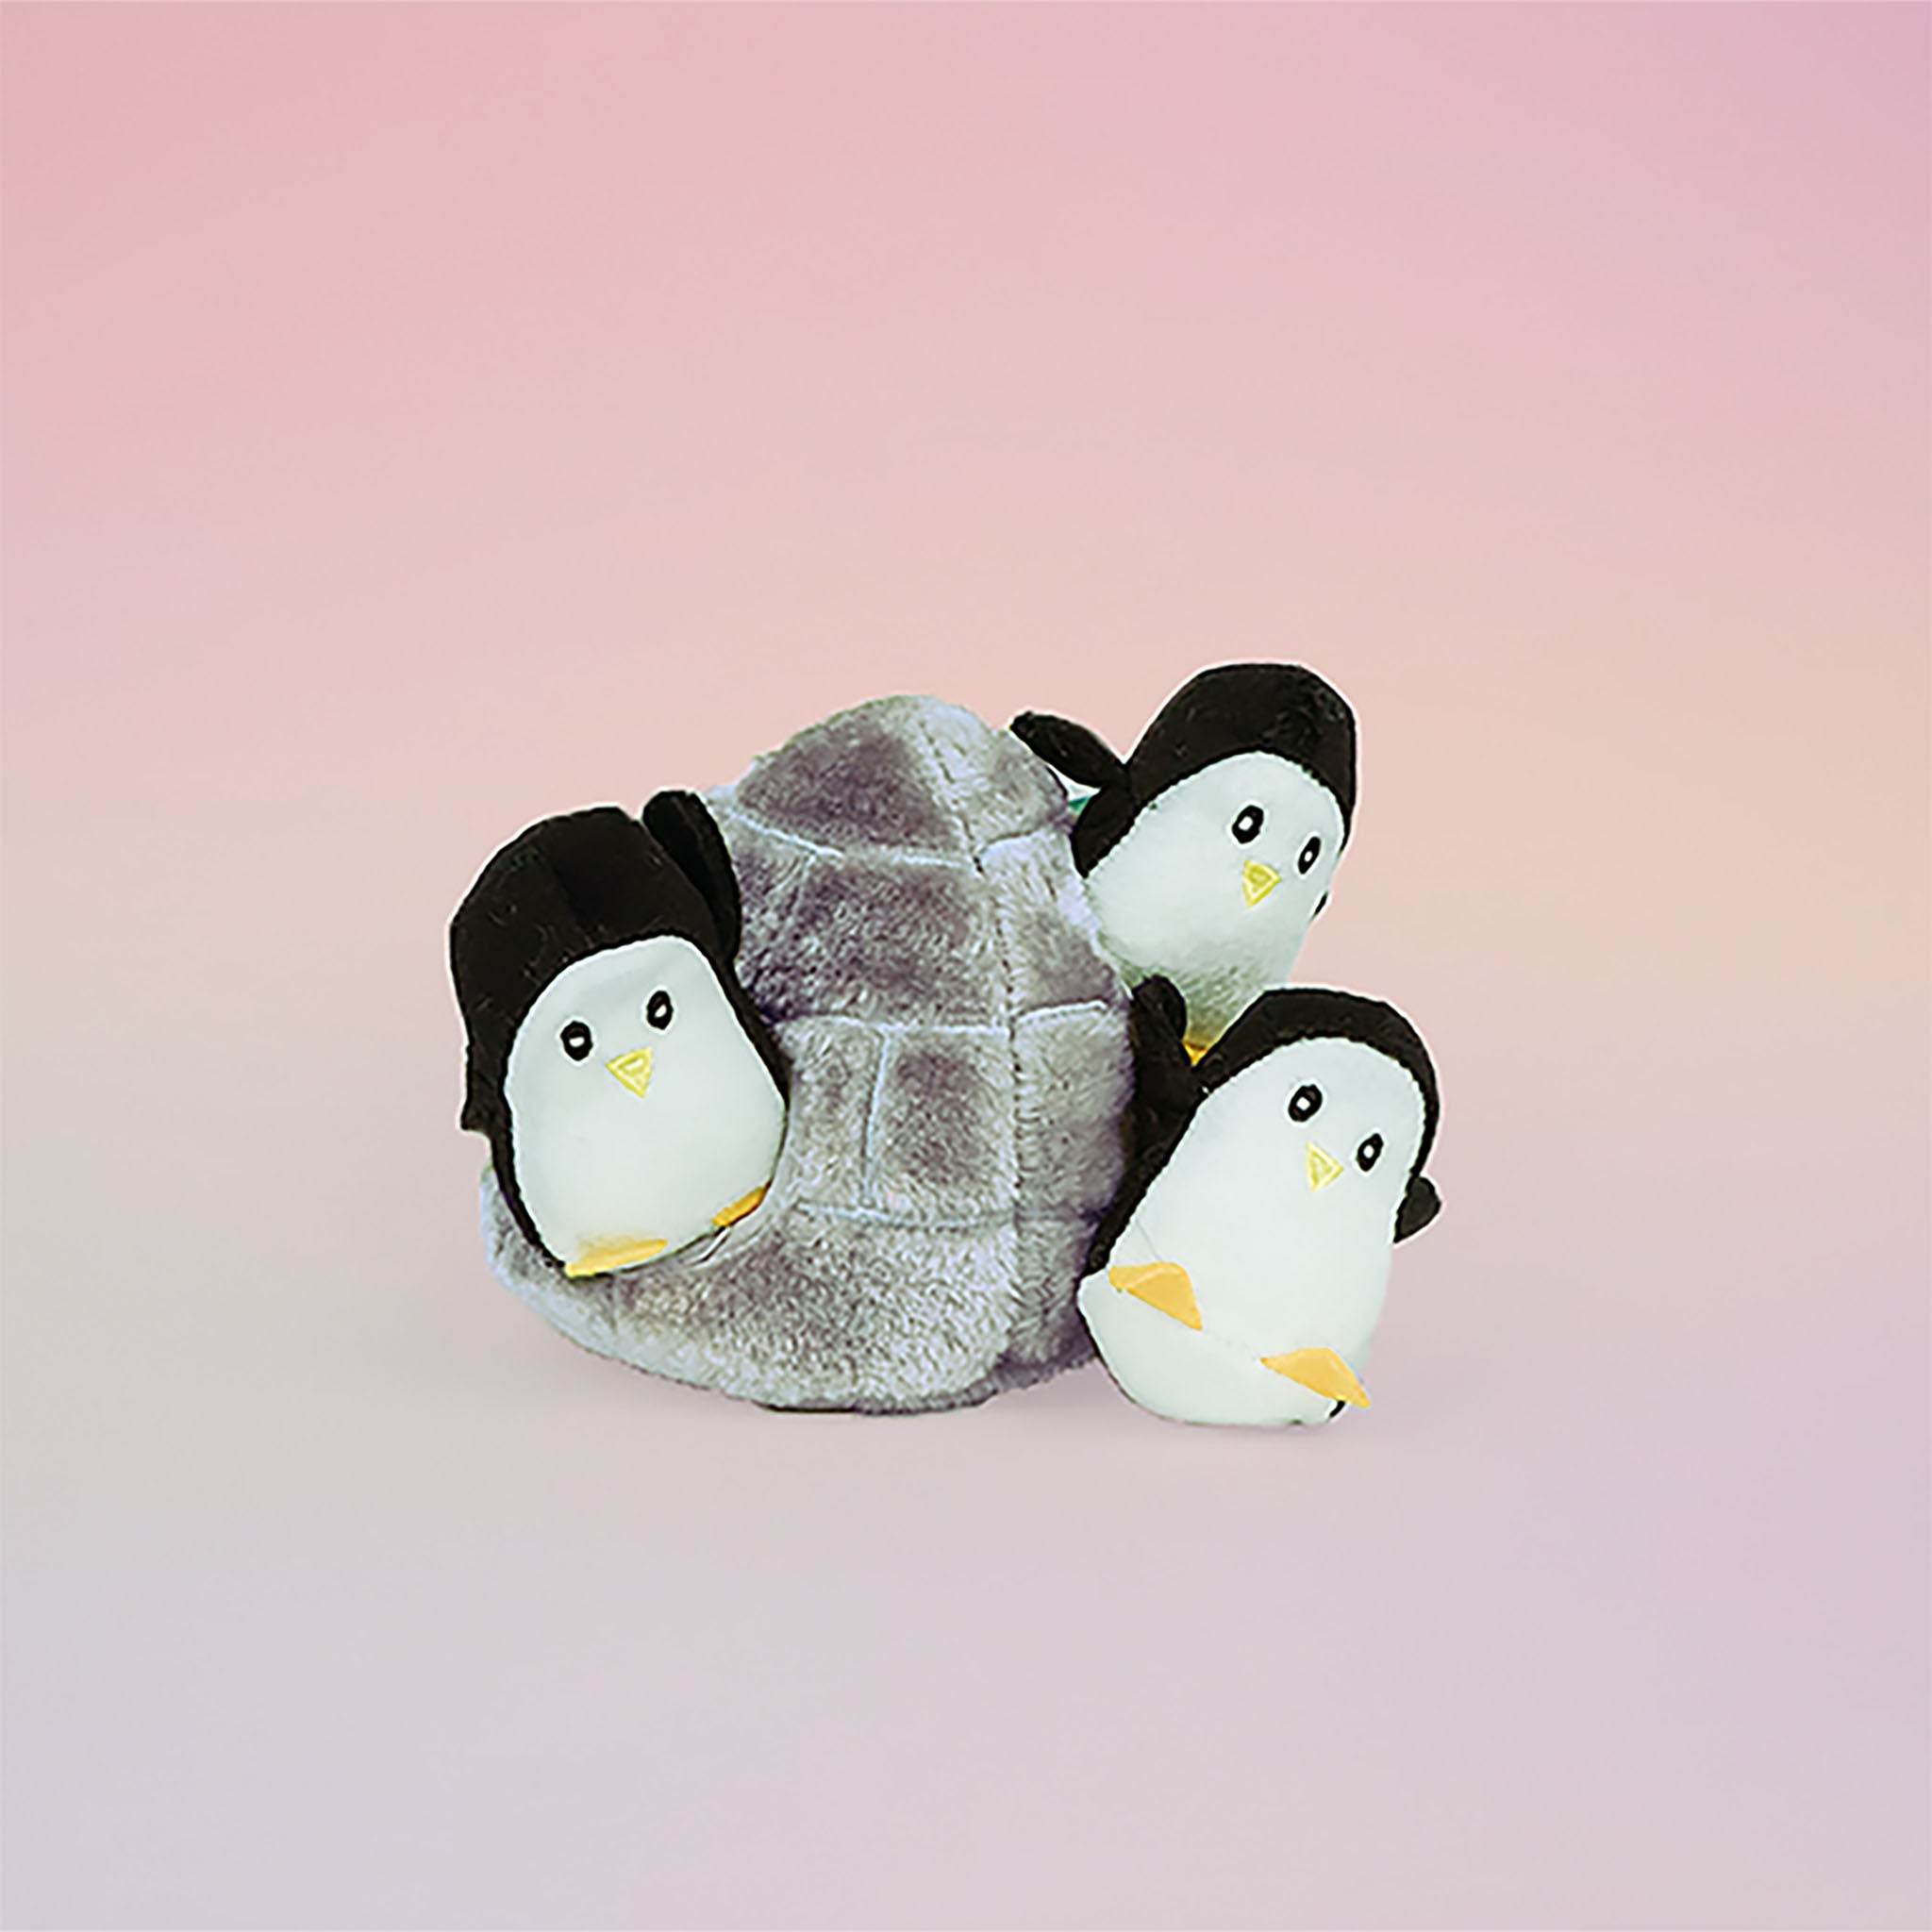 Petite party penguins